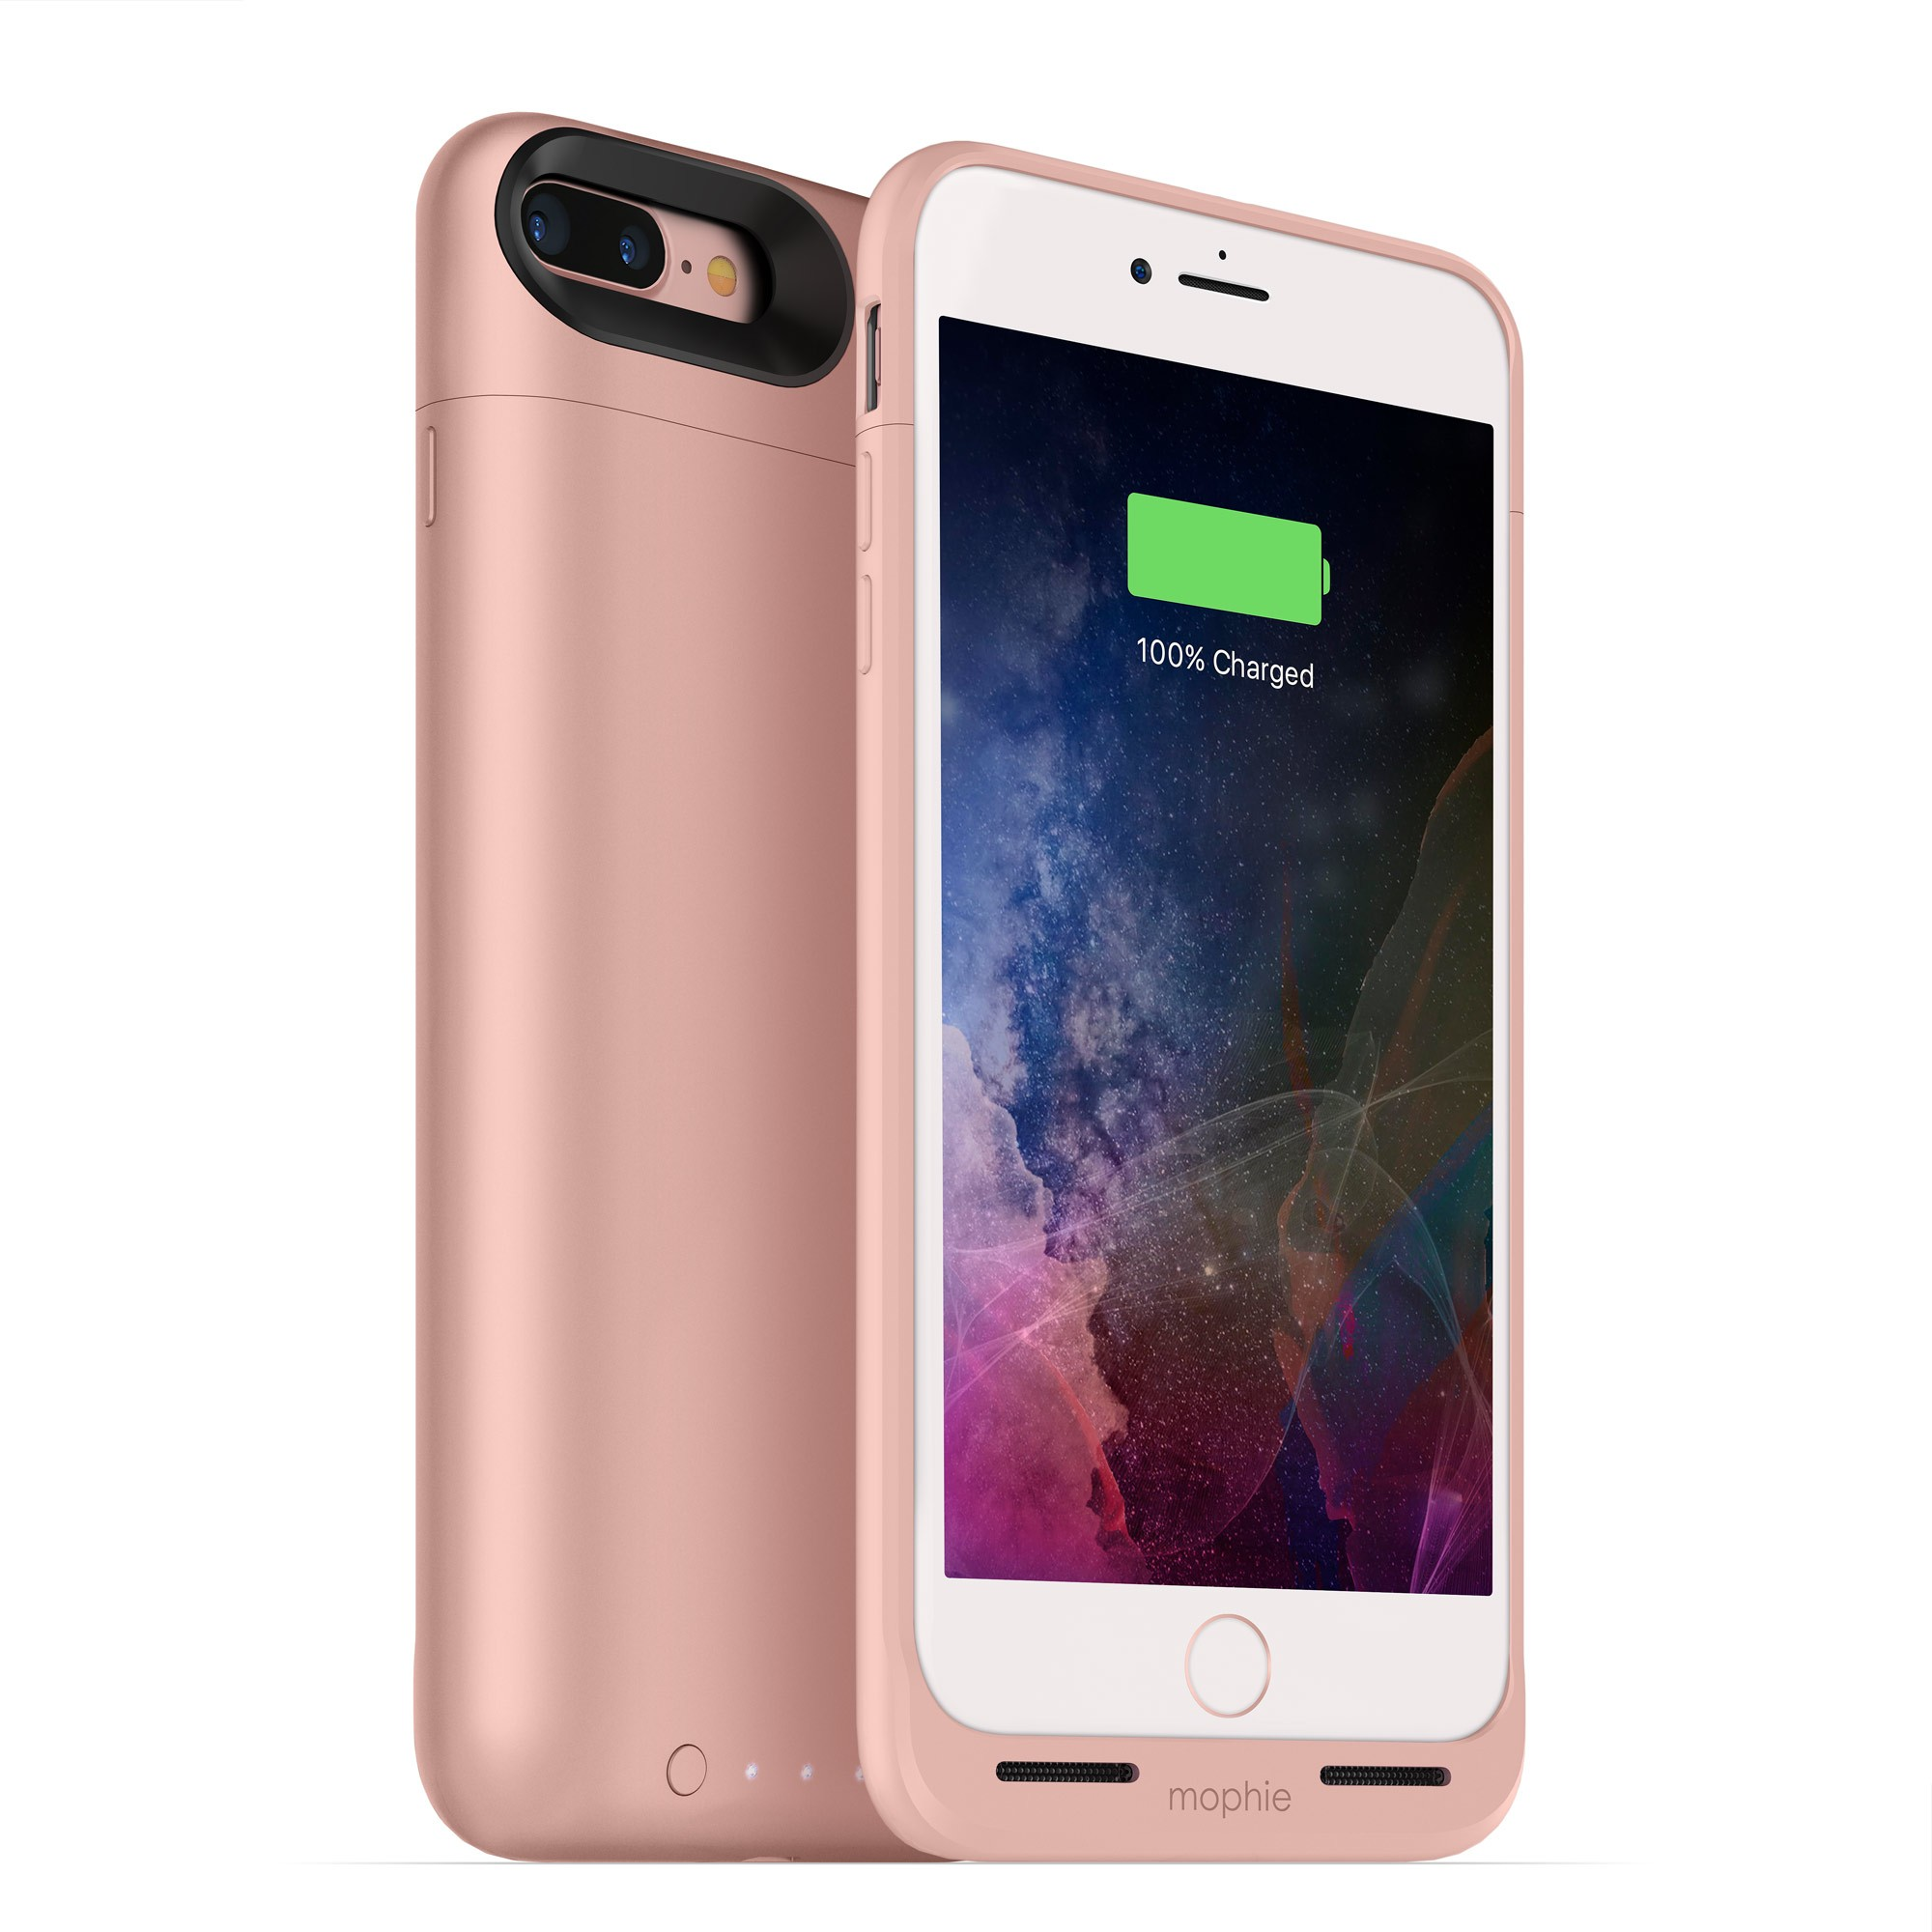 mophie juice pack air battery case for iphone 7 plus 8 plus 2,420mah